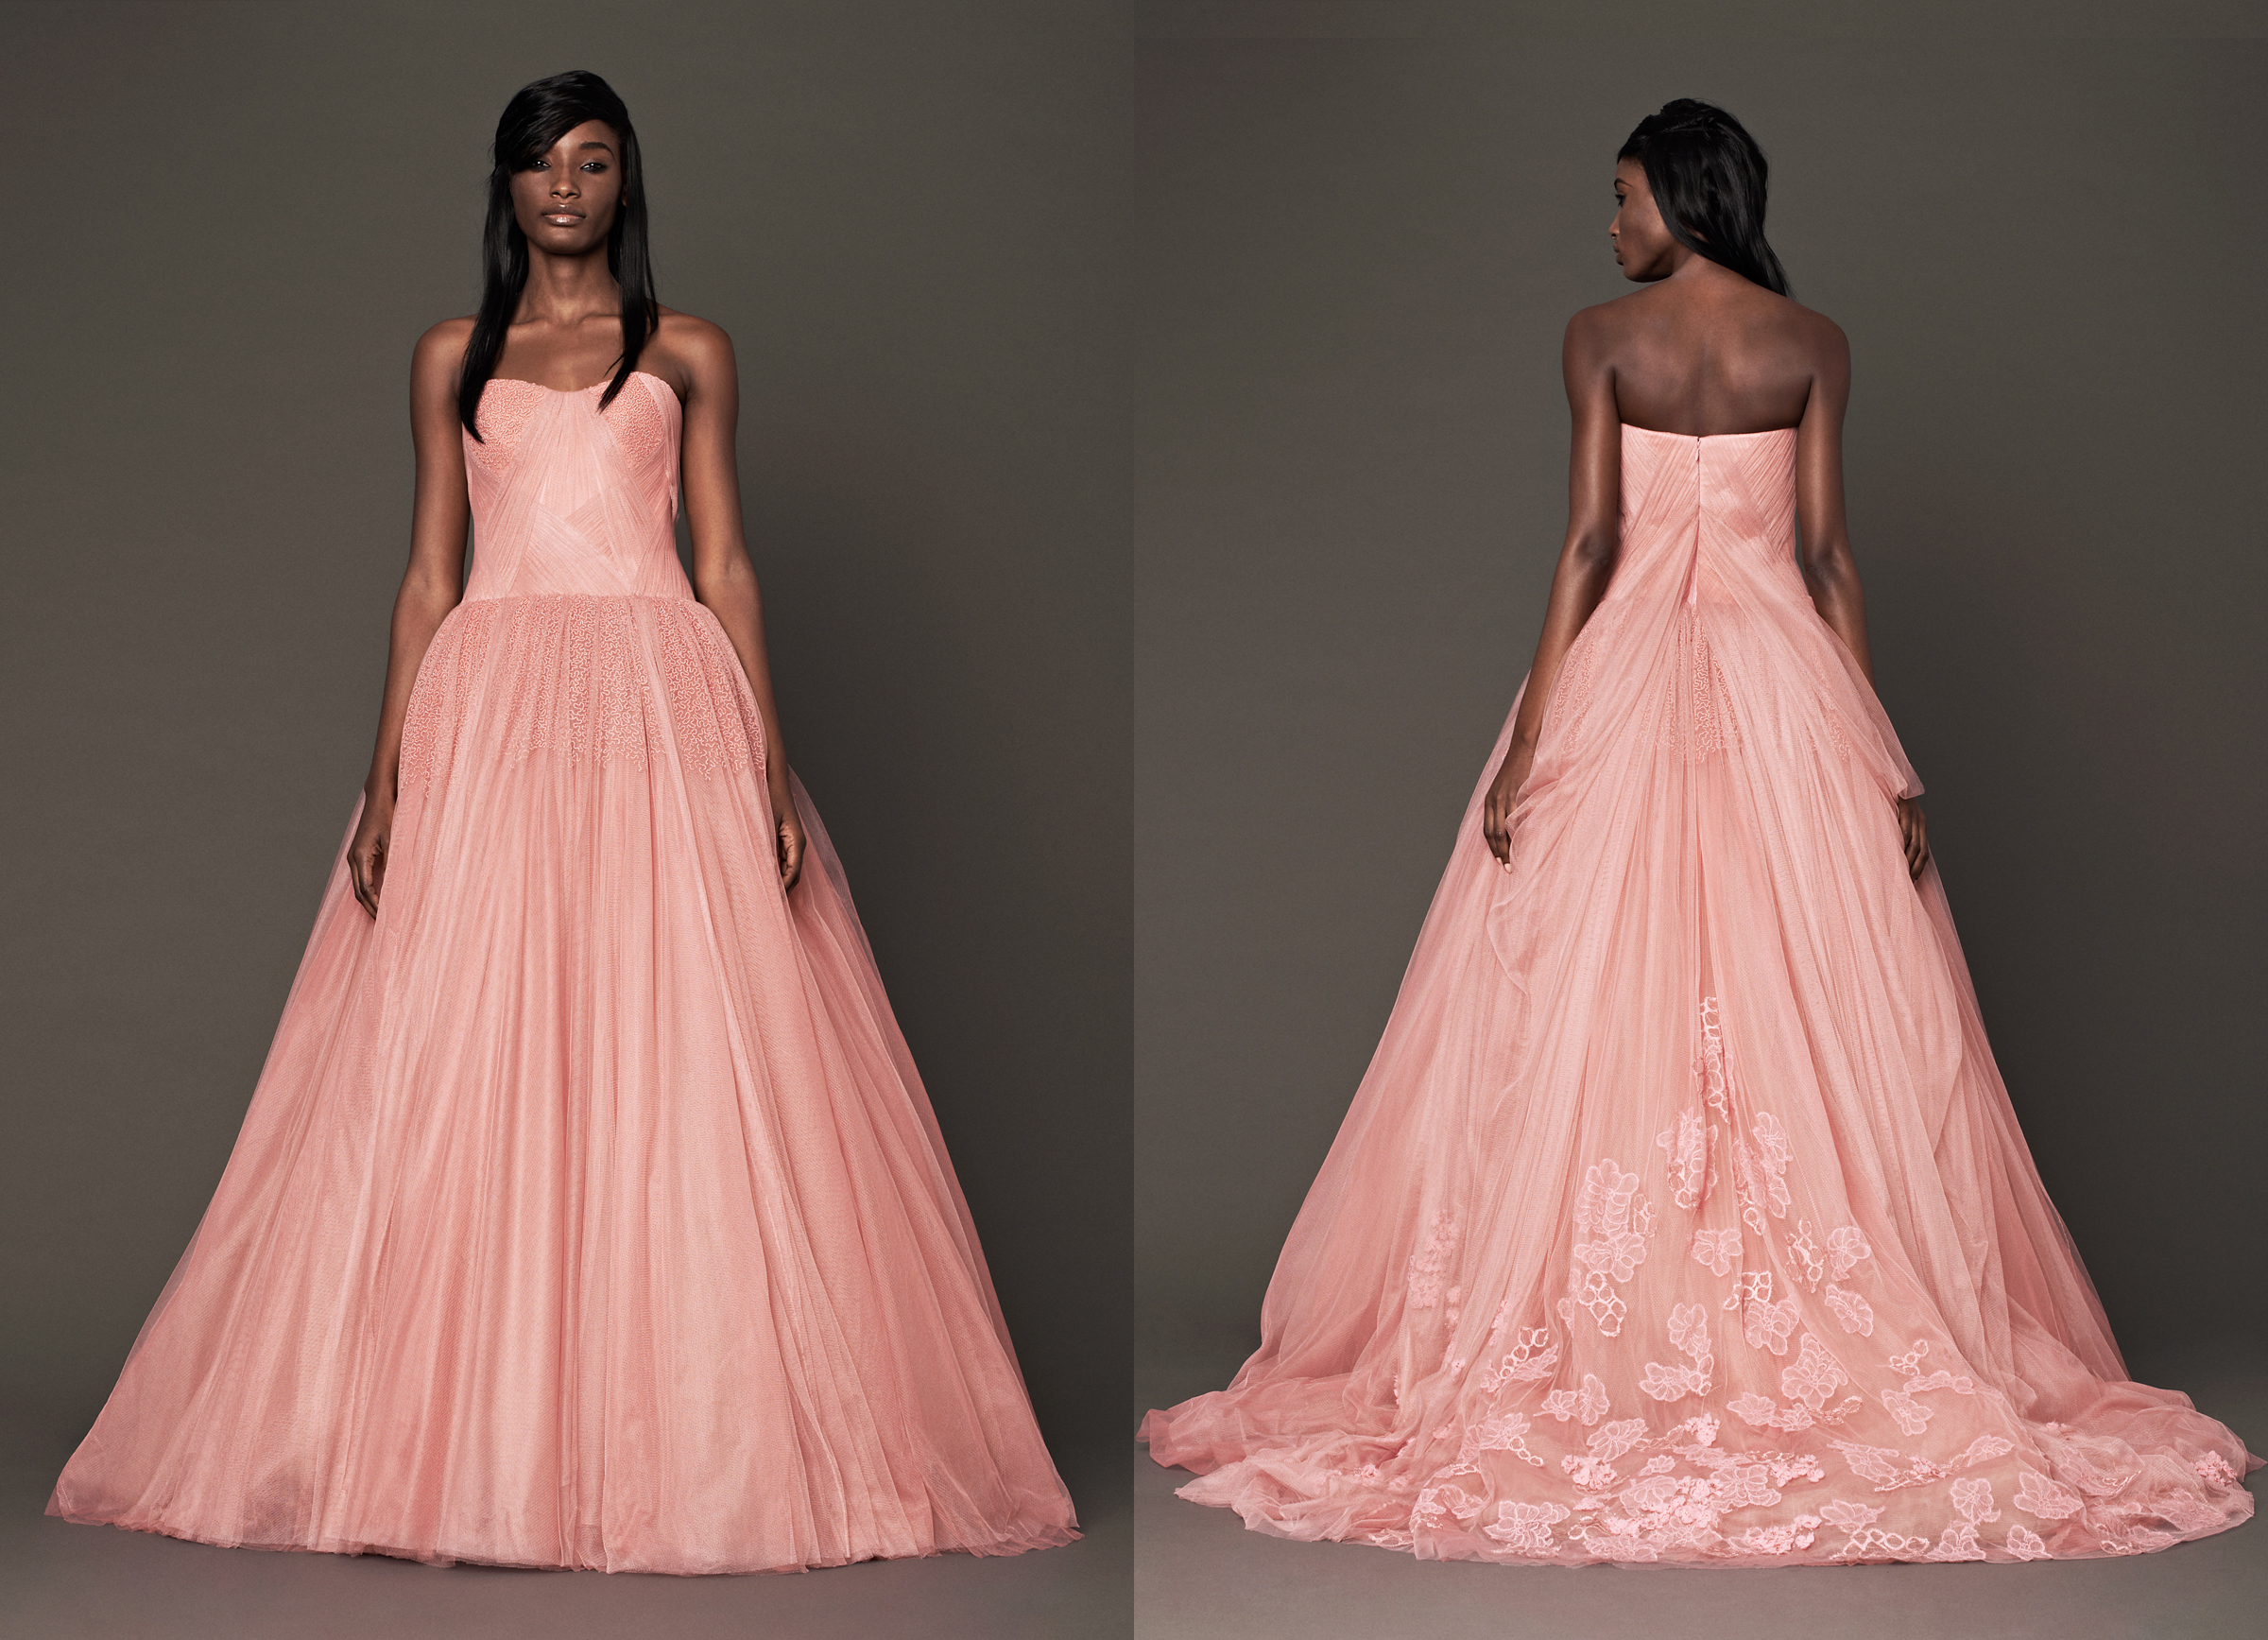 Hermosa Vera Wang Vestidos De Damas De Honor Bandera - Ideas de ...